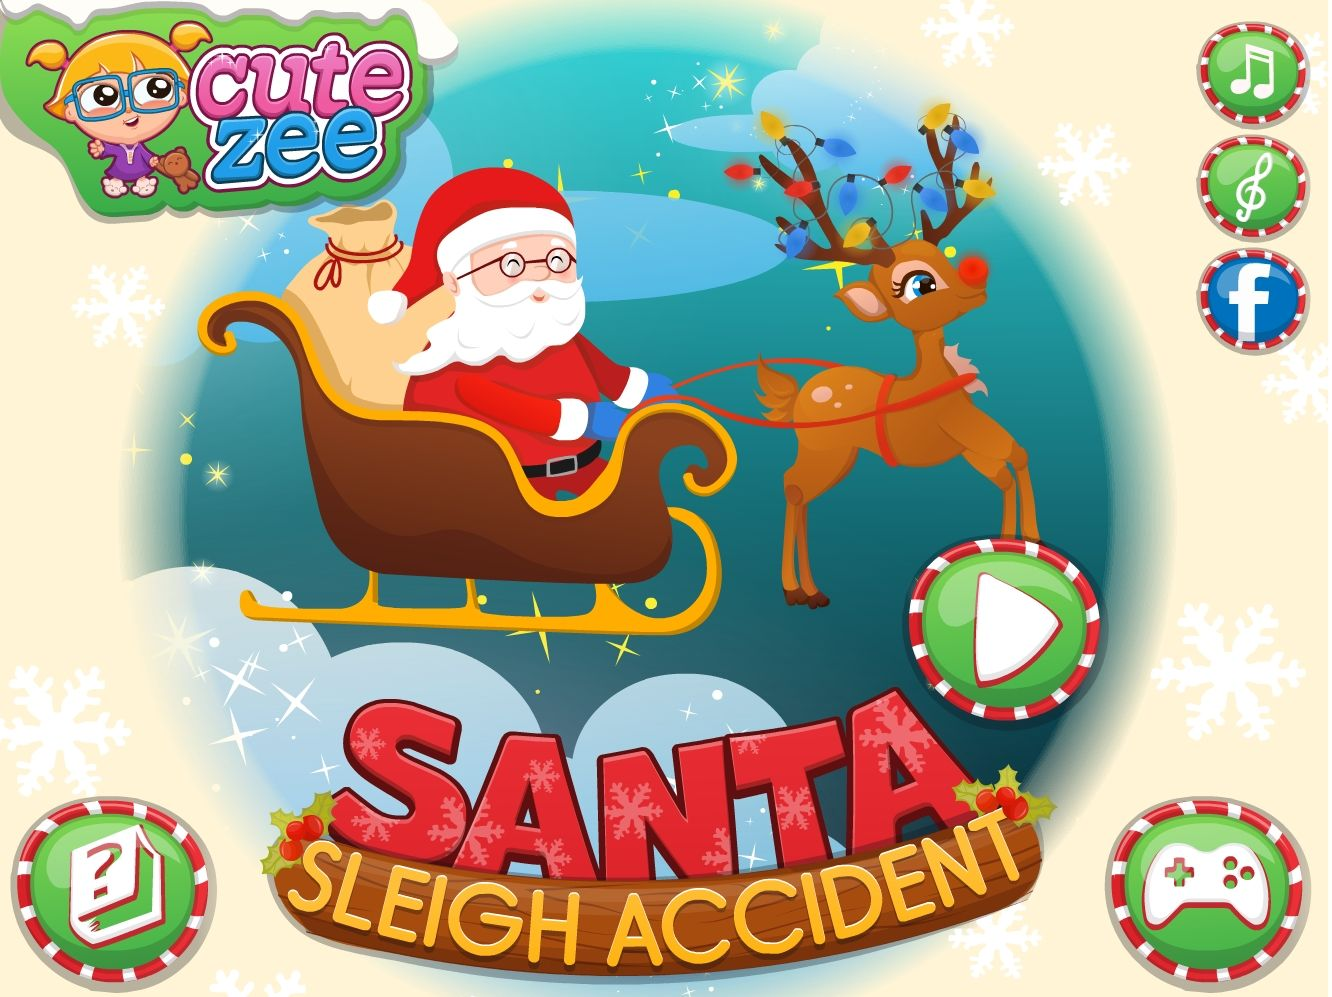 Oh no! Santa had a sleigh accident! Help him get to the kids in time! http://www.cutezee.com/santa-sleigh-accident